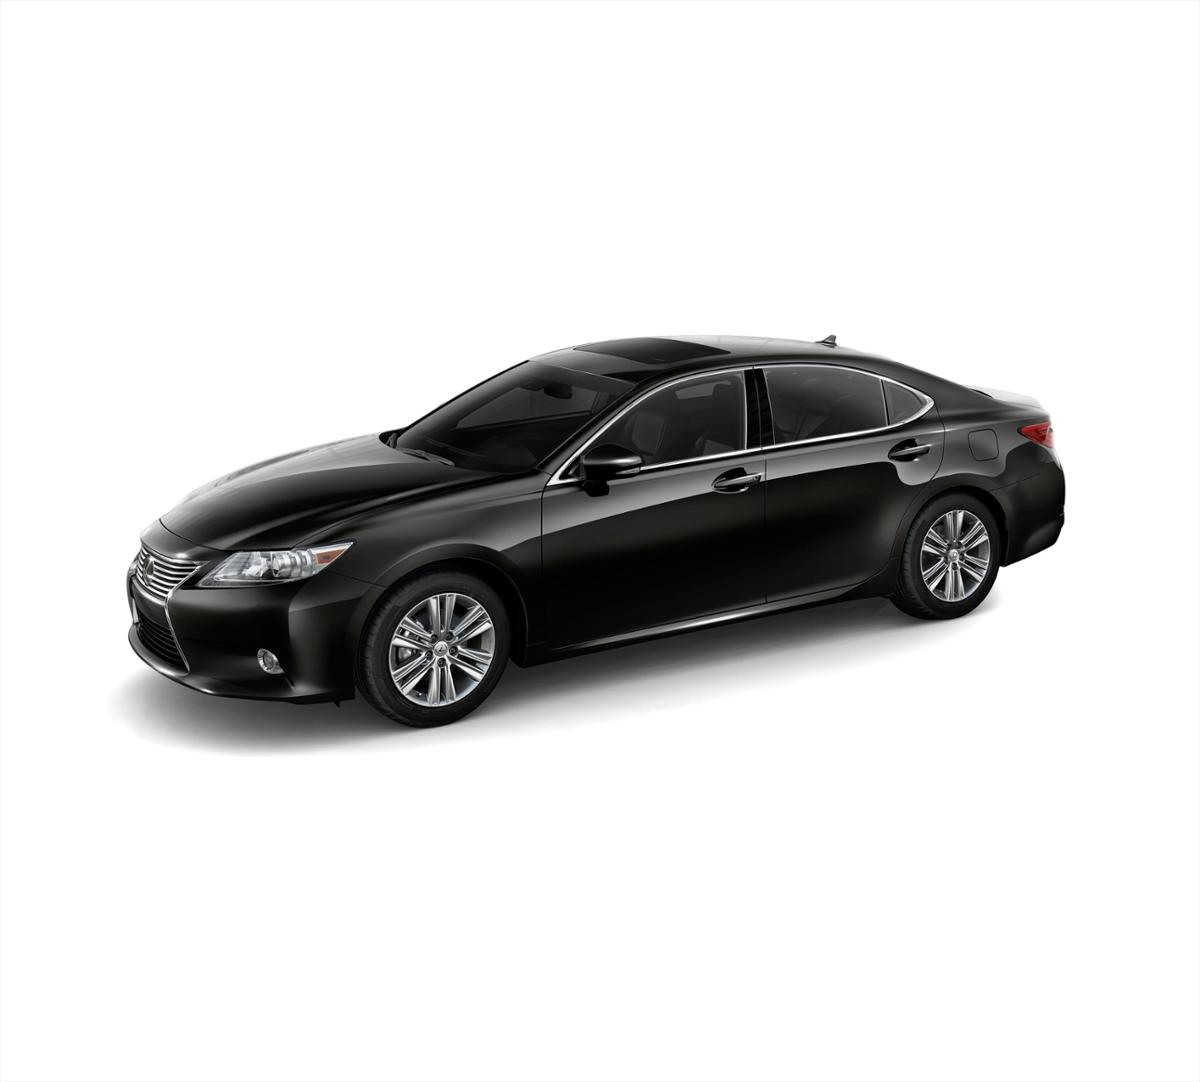 2009 lexus es 350 review ratings specs prices and. Black Bedroom Furniture Sets. Home Design Ideas